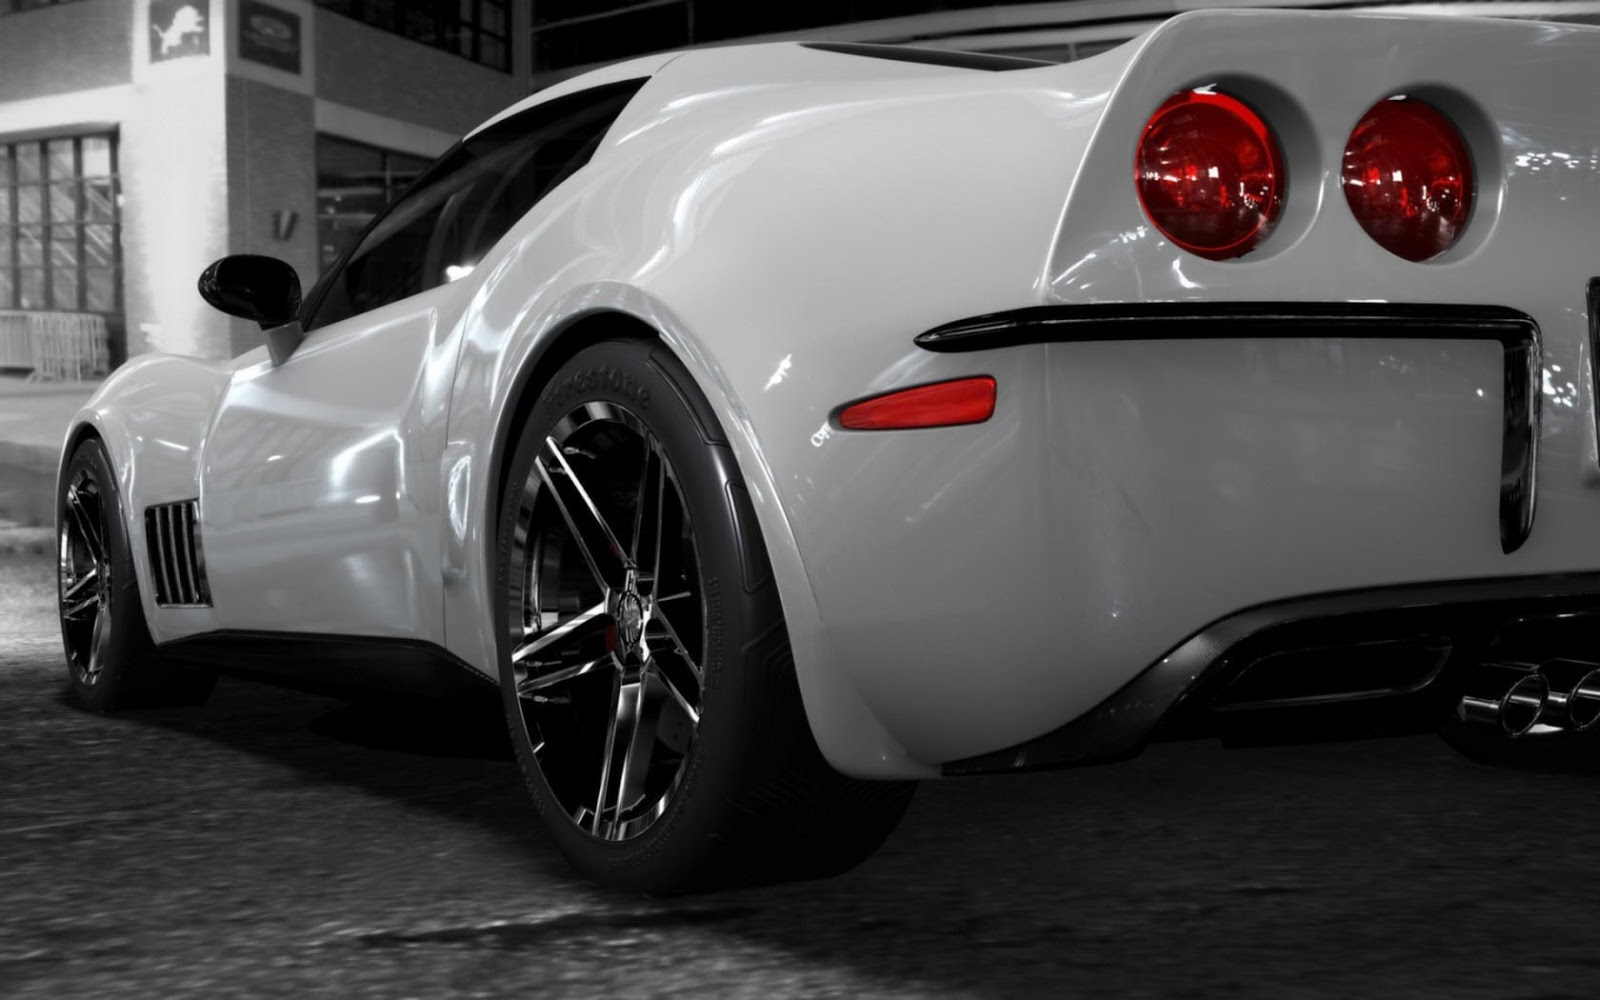 Cool Cars HD Wallpapers Wallpaper - Cool 3d cars